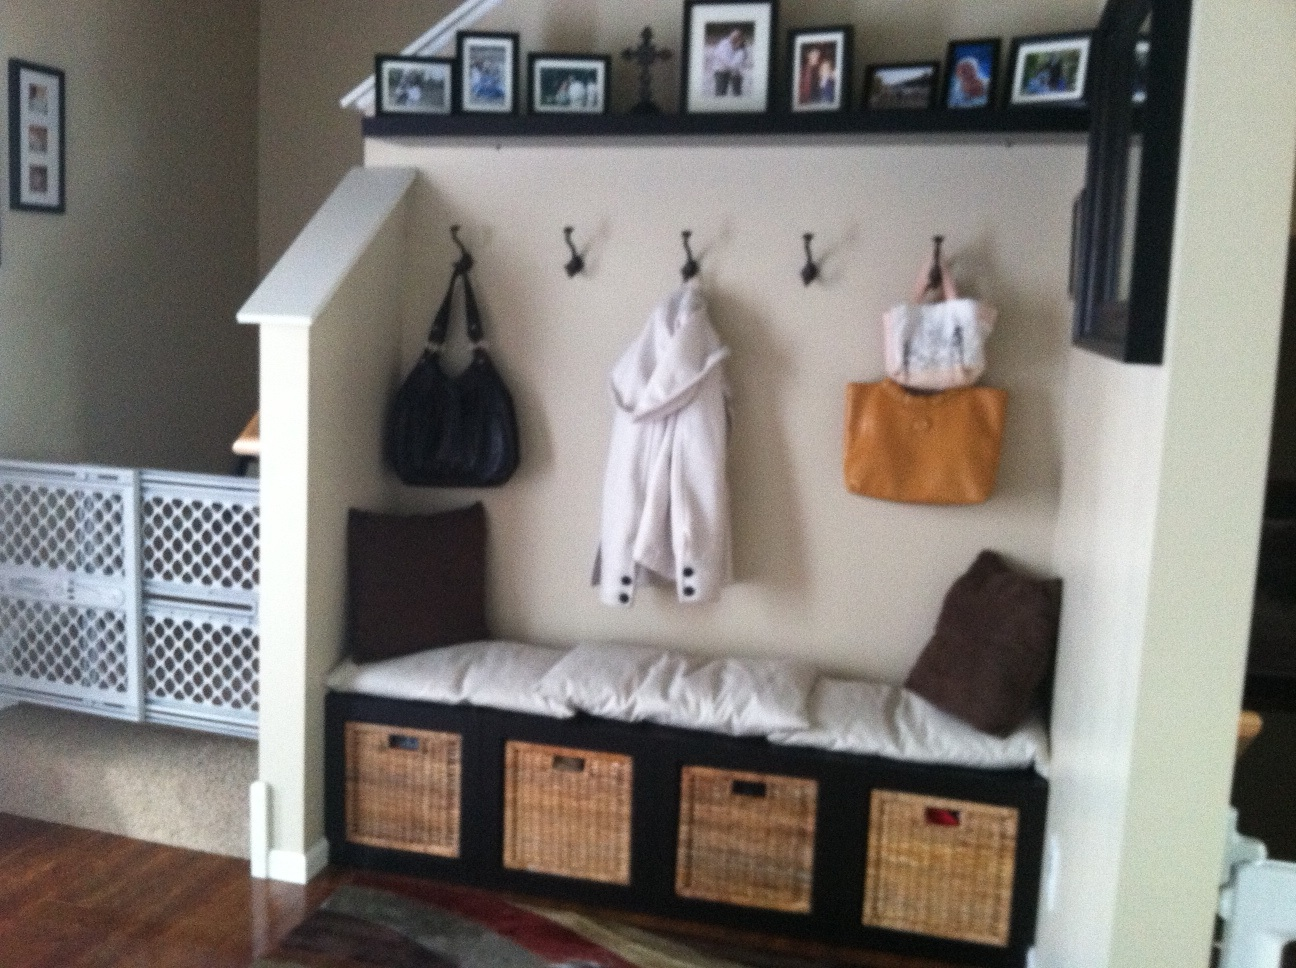 A Large Rug To Entry Way 2 Allow For Moving With Shoes And A Place To Put  ...